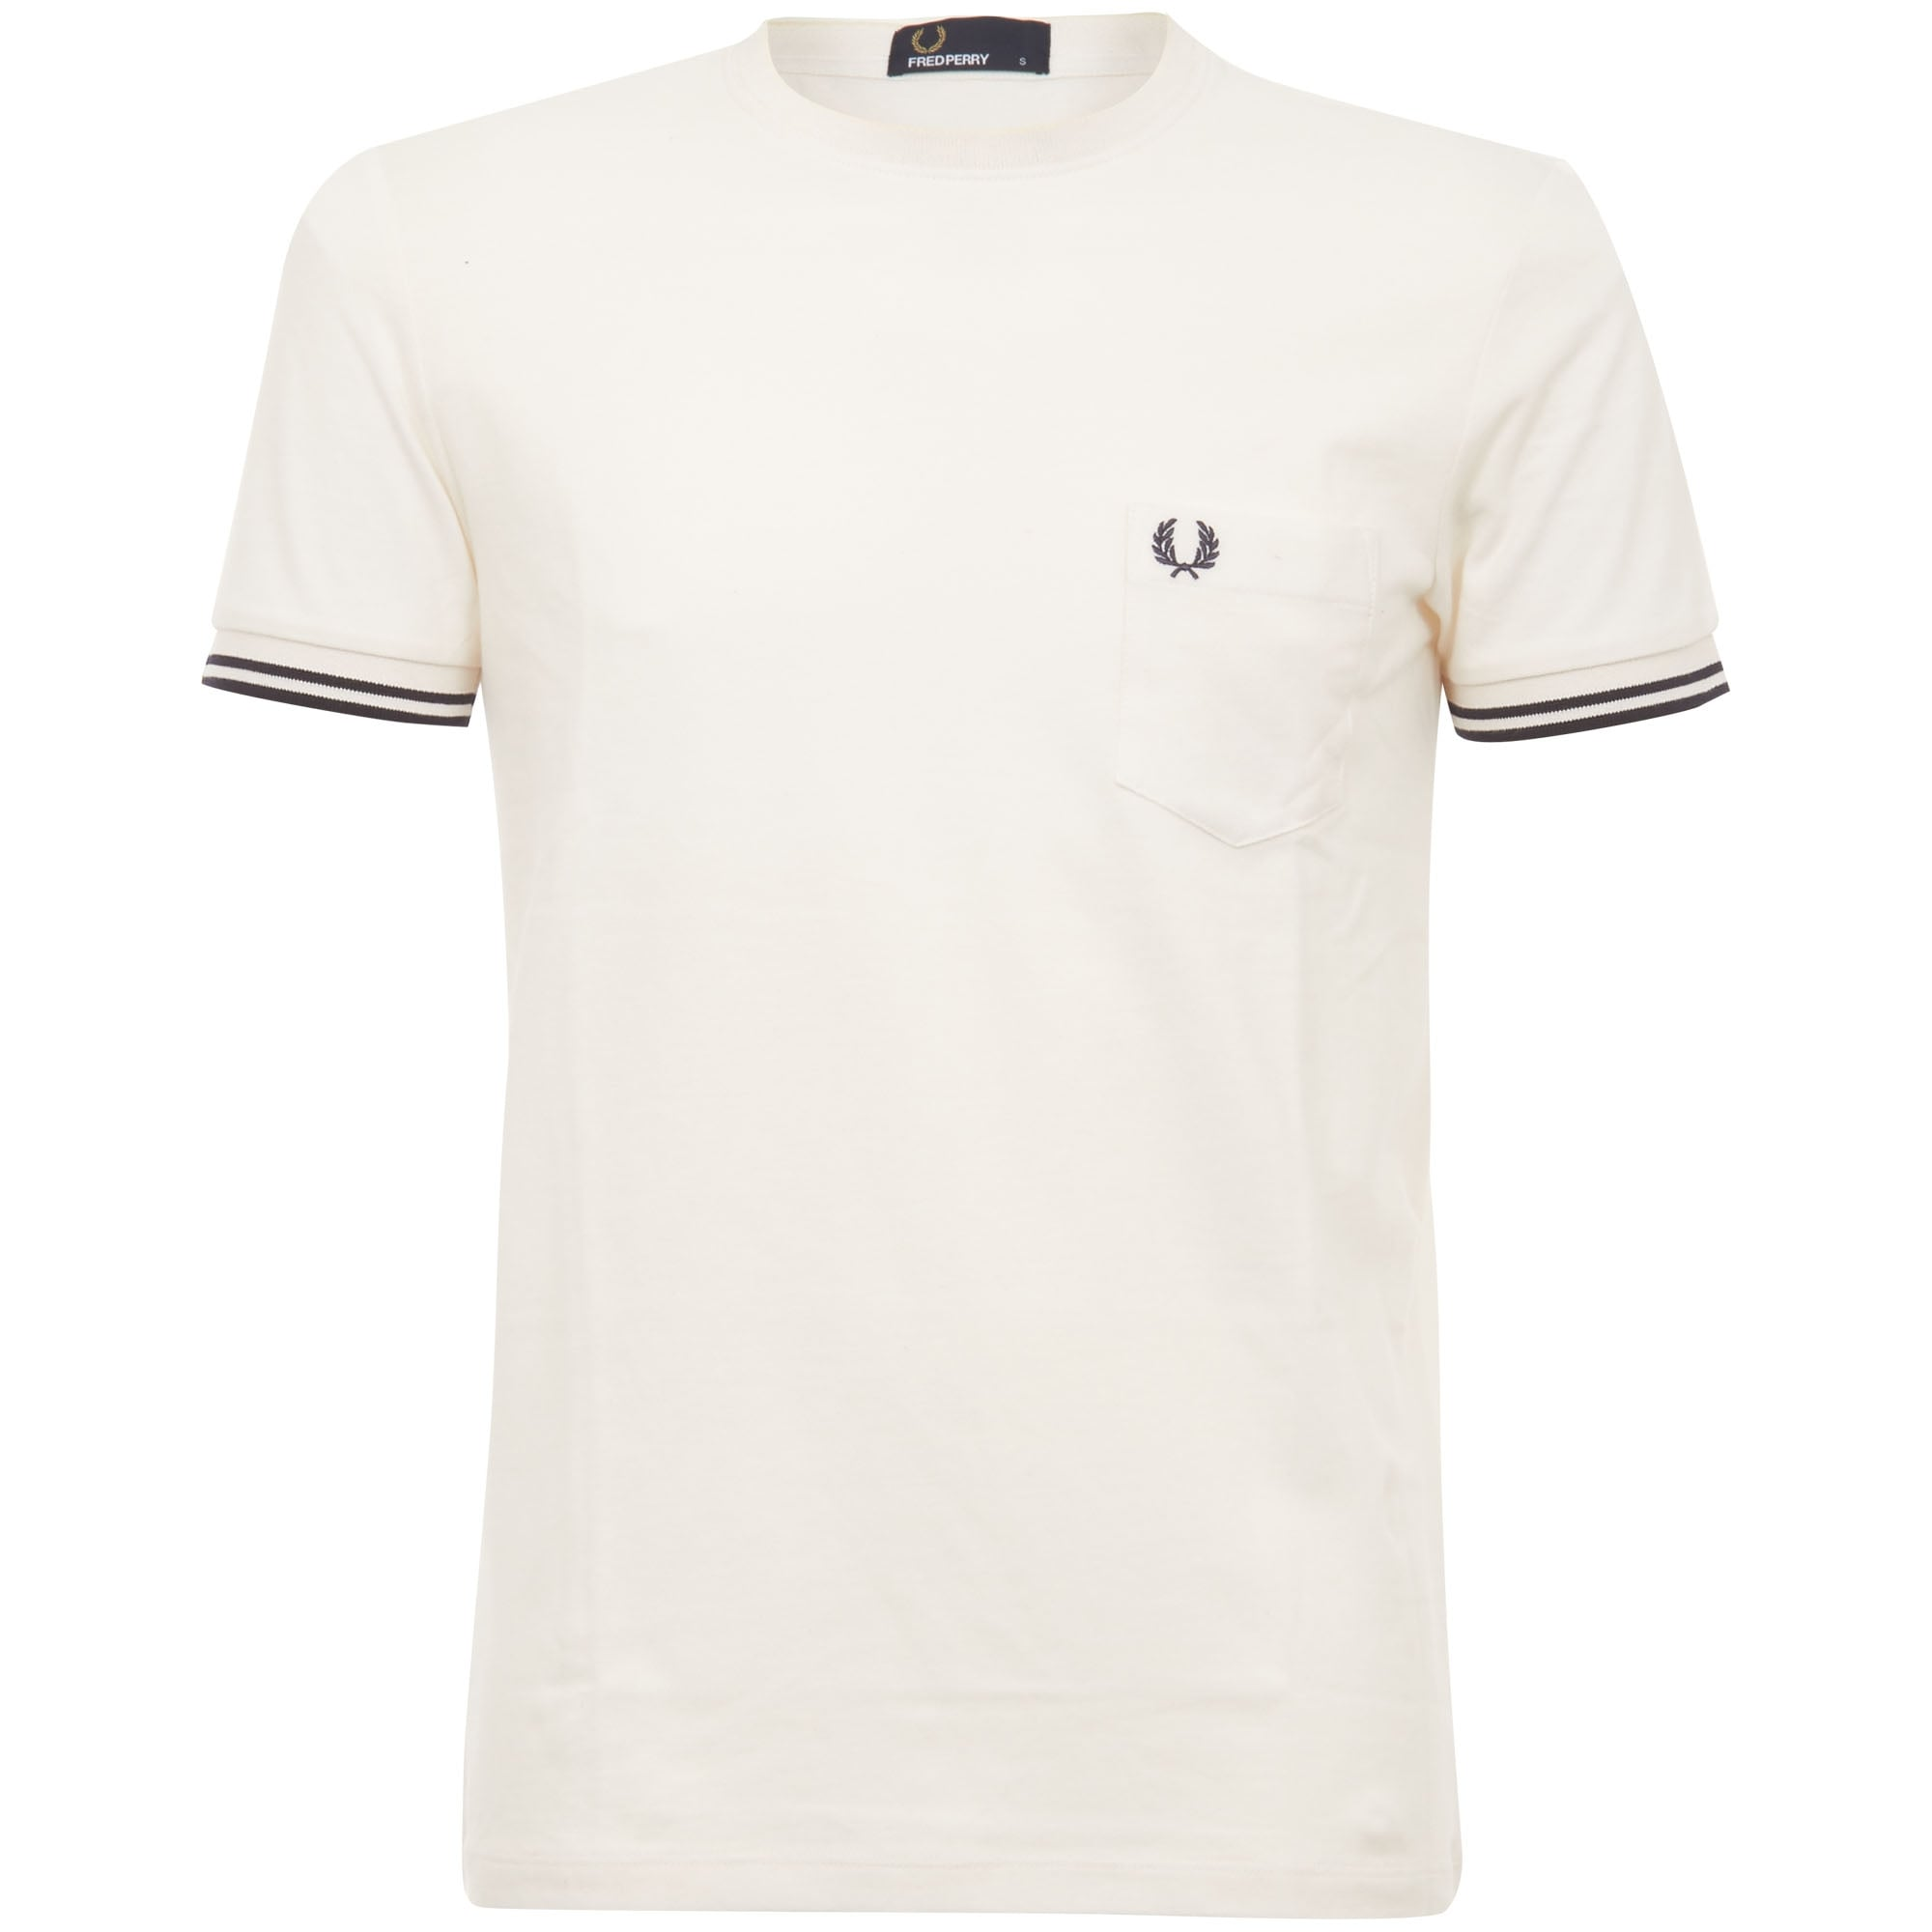 free delivery bright in luster sale retailer Fred Perry Authentic Fred Perry Twin Tipped Pique T-Shirt Cream M2536